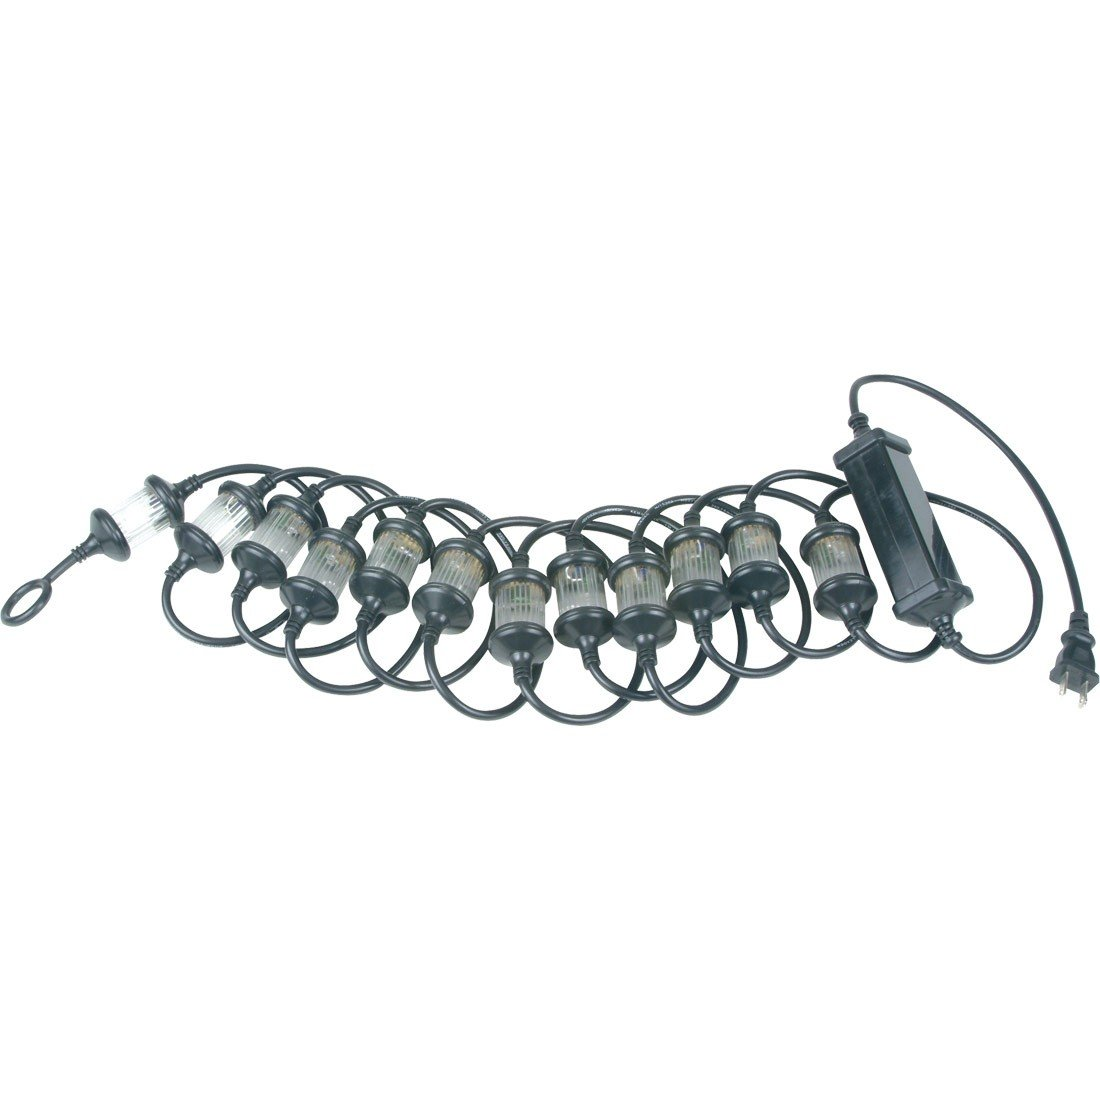 ADJ Products ADJ Flash Rope gives you 15.5 Feet of waterproof Strobe lighting you can use indoors by ADJ Products